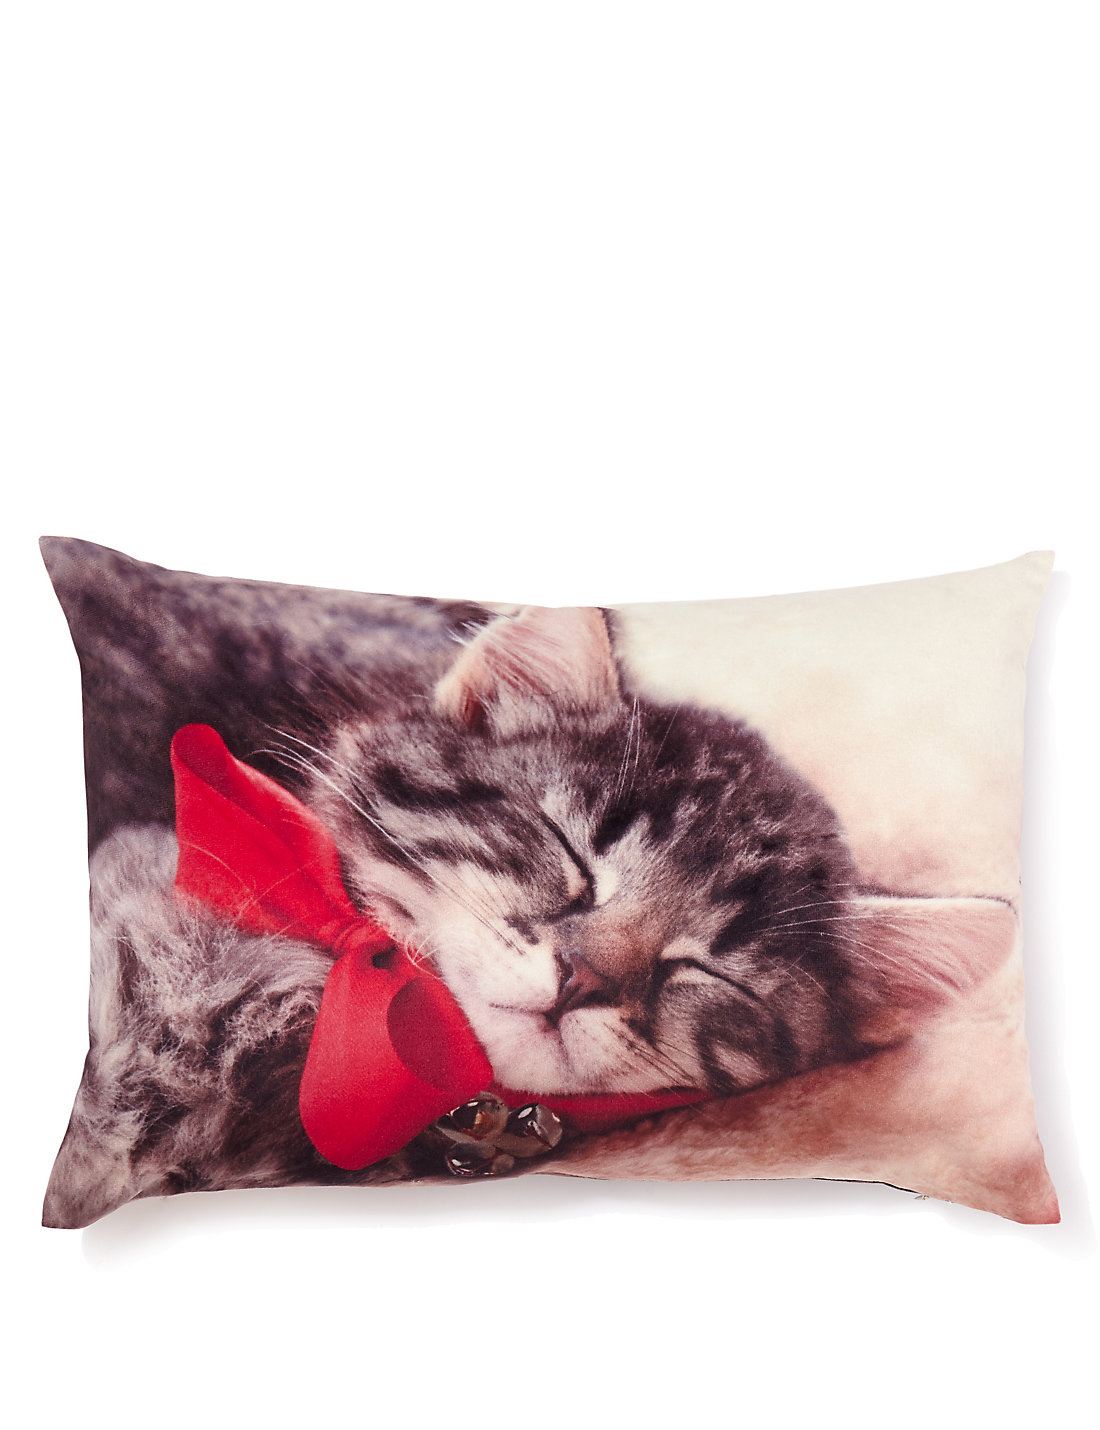 from marks and spencers in the uk an adorable kitten pillow this has to be the perfect gift for any cat lover as the cuteness will work for girls and guys